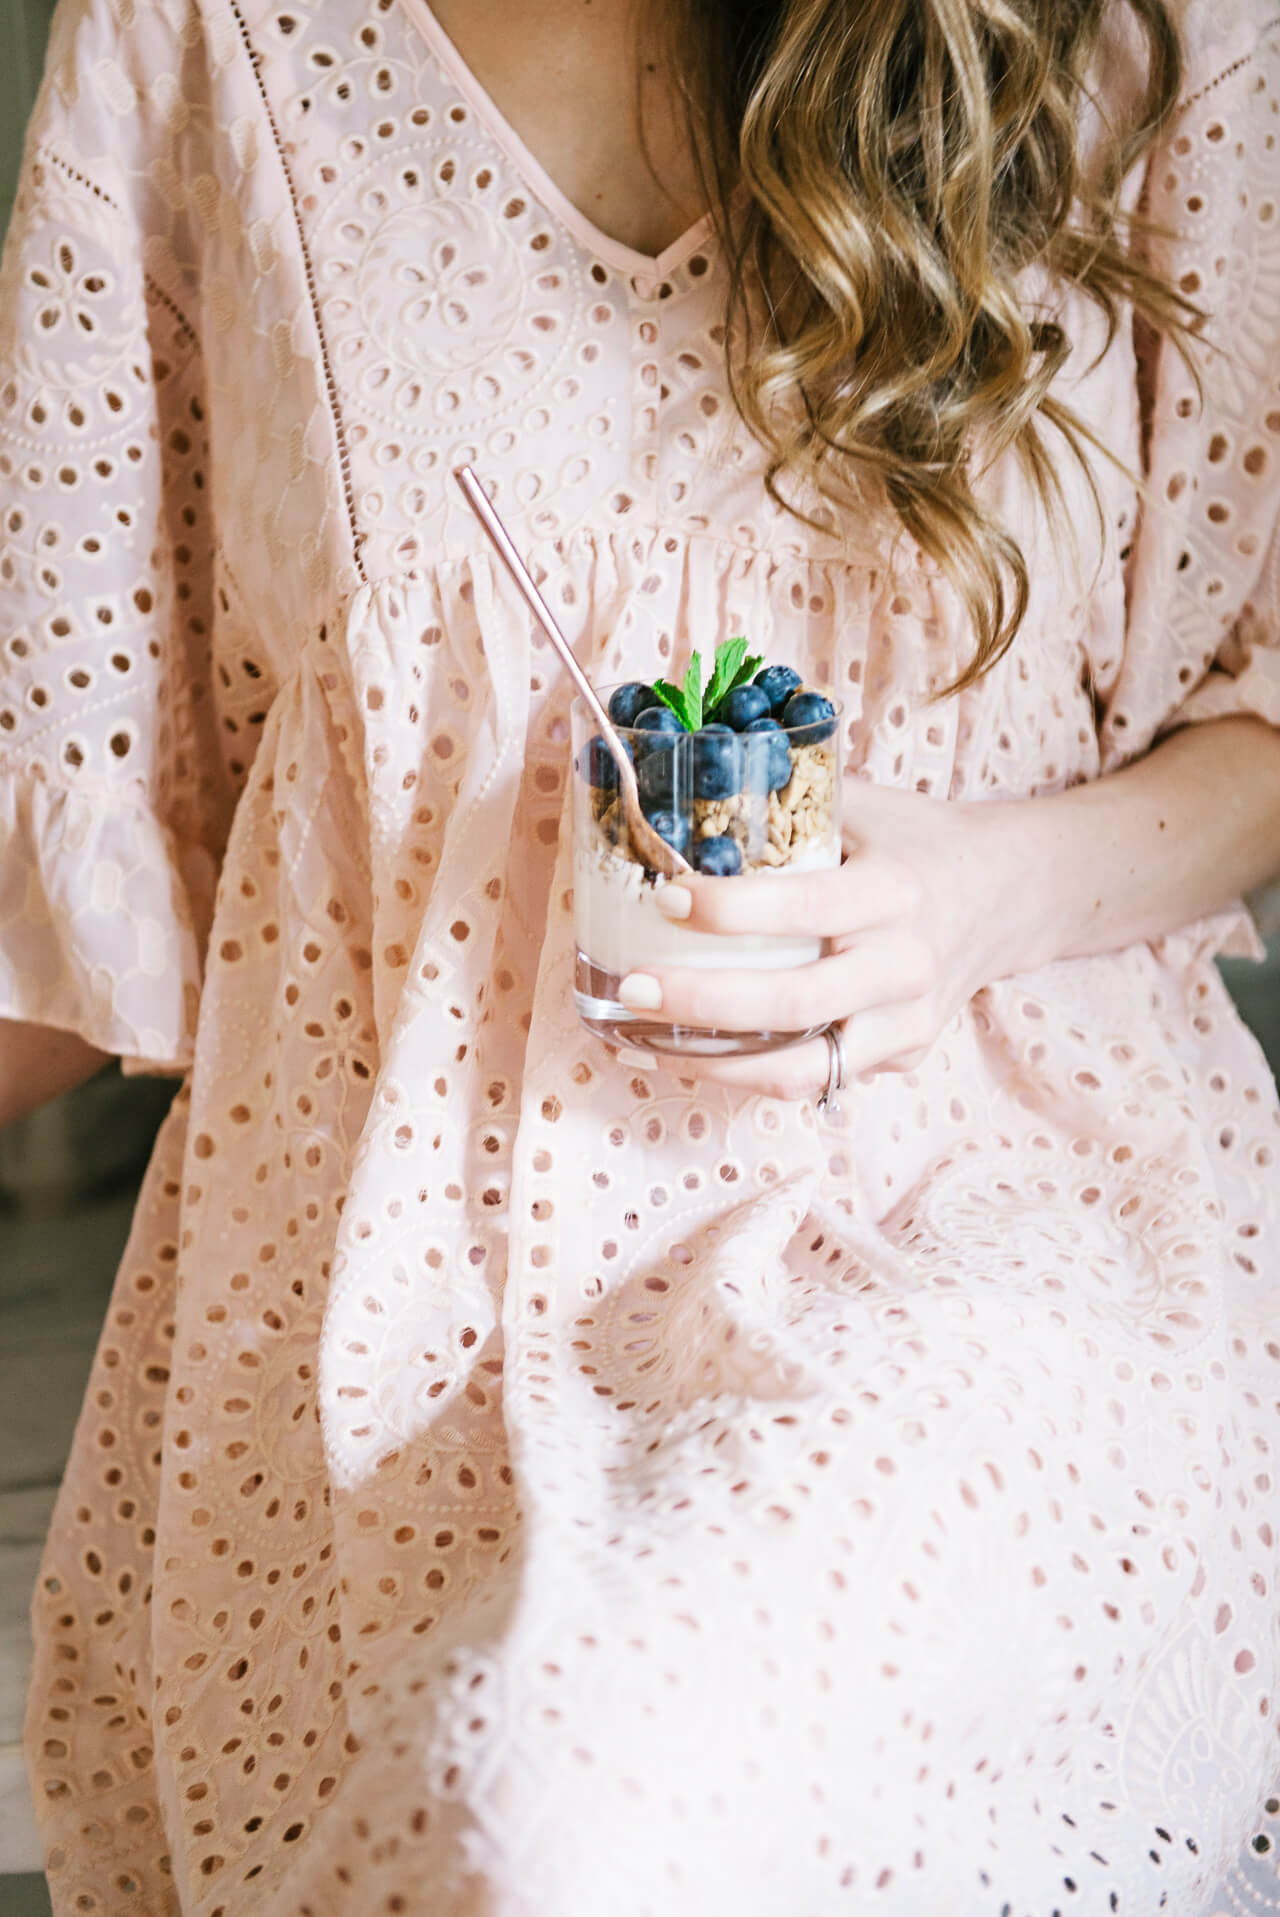 beautiful blueberry parfait with pretty peach dress